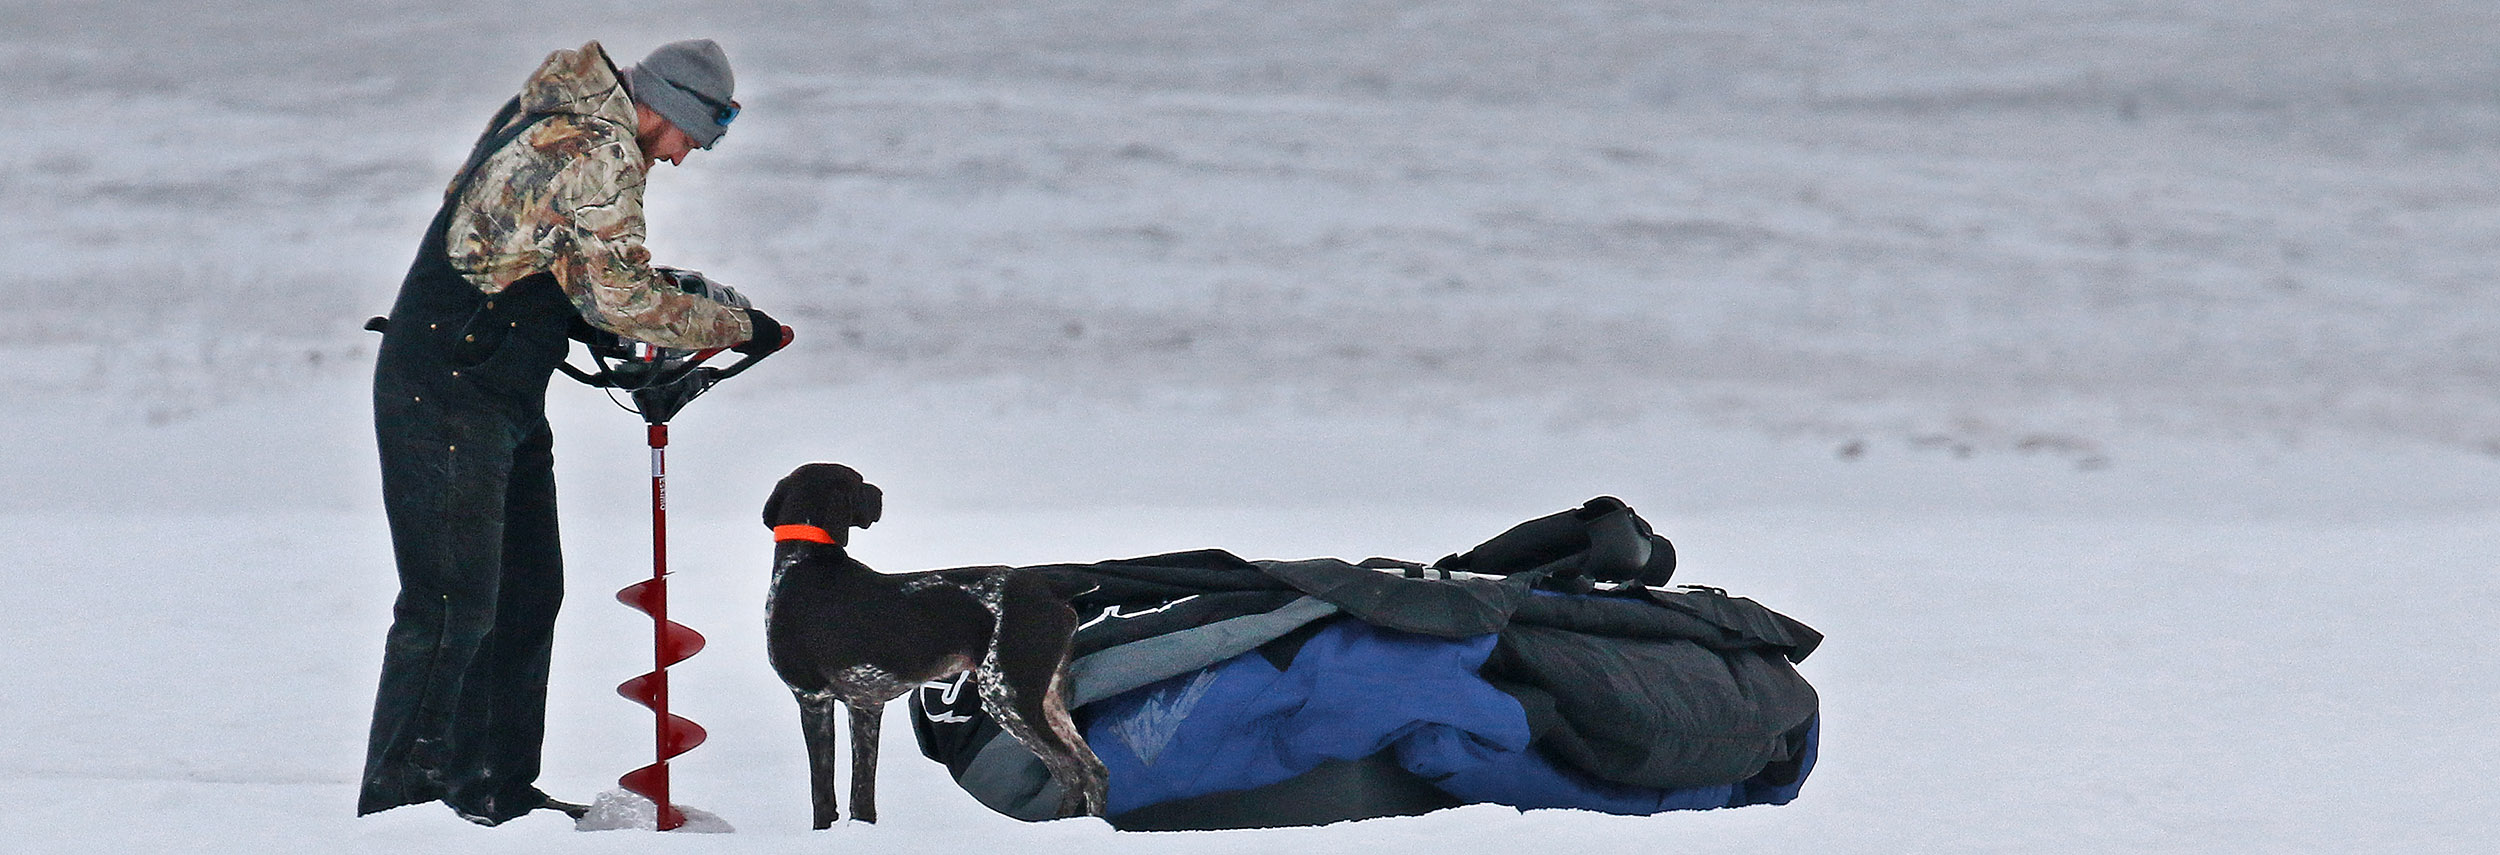 Man drilling ice hole with dog standing by